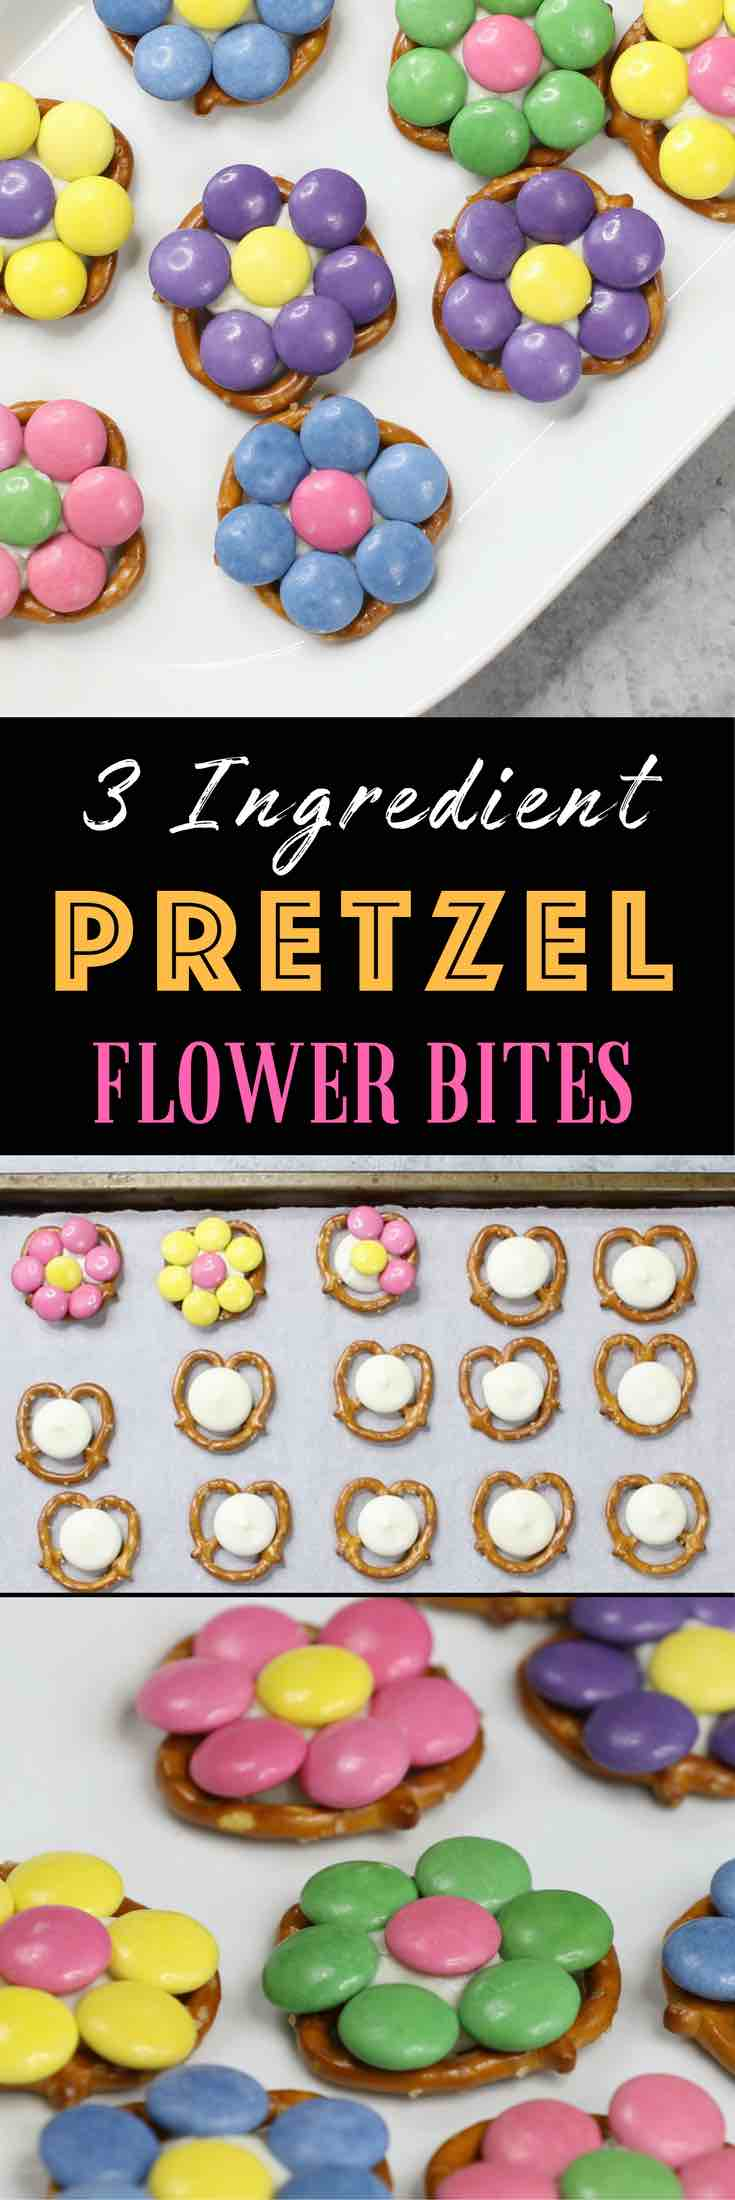 Pretzel Flower Bites – the perfect bite-sized sweet, salty, crunch and yummy snacks! It's so easy to make and comes together in 10 minutes. All you need is only 3 ingredients: pretzels, white candy melt and M&M candy (or Smarties). These are great treats for Easter, Mother's Day, spring parties, birthdays or baby showers. Quick and easy recipe. Vegetarian. Video recipe. | Tipbuzz.com